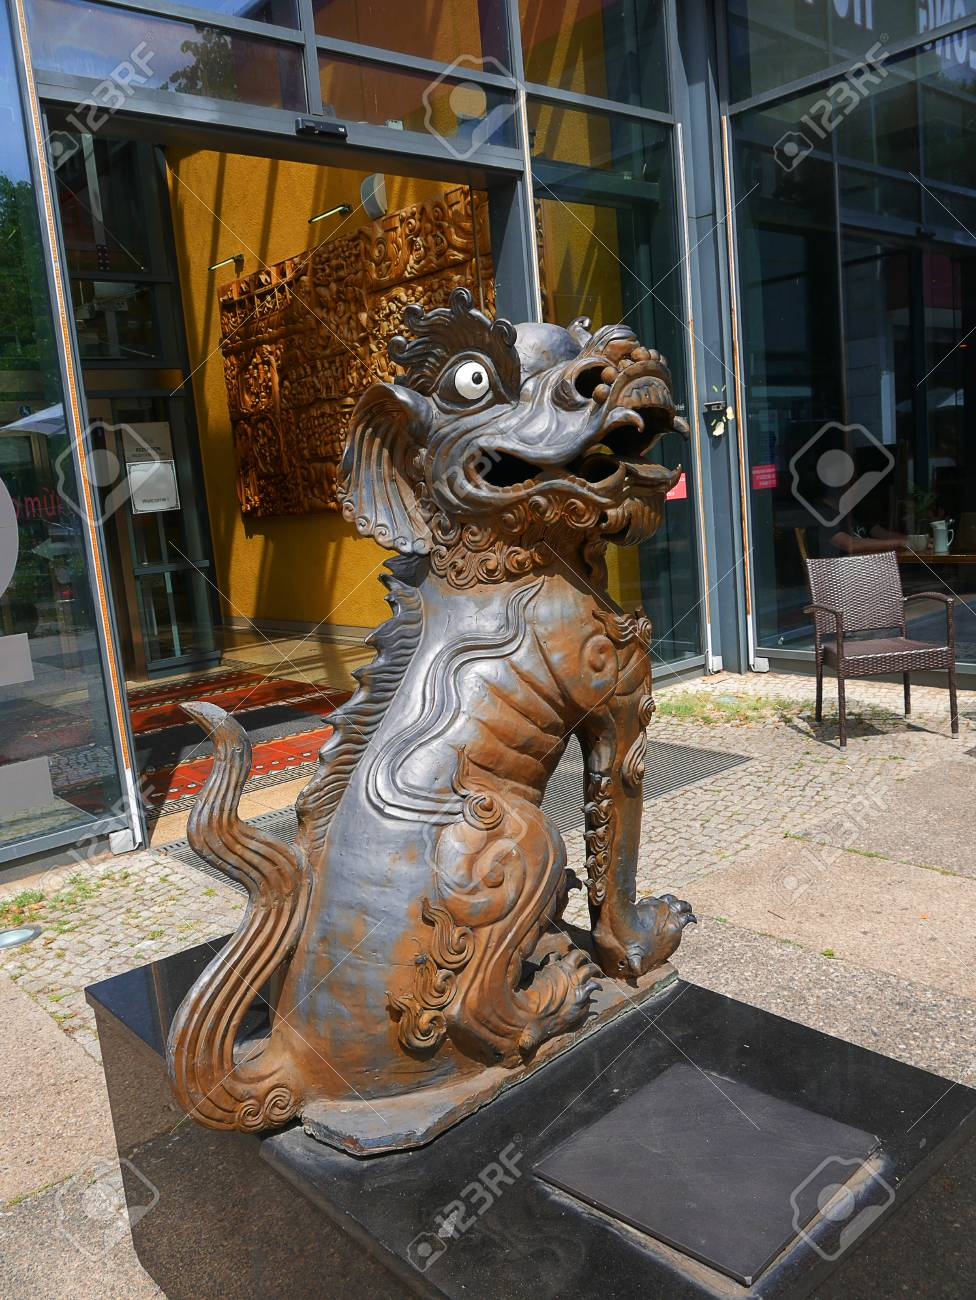 Lion outside a chinese restaurant in the Alexanderplatz area